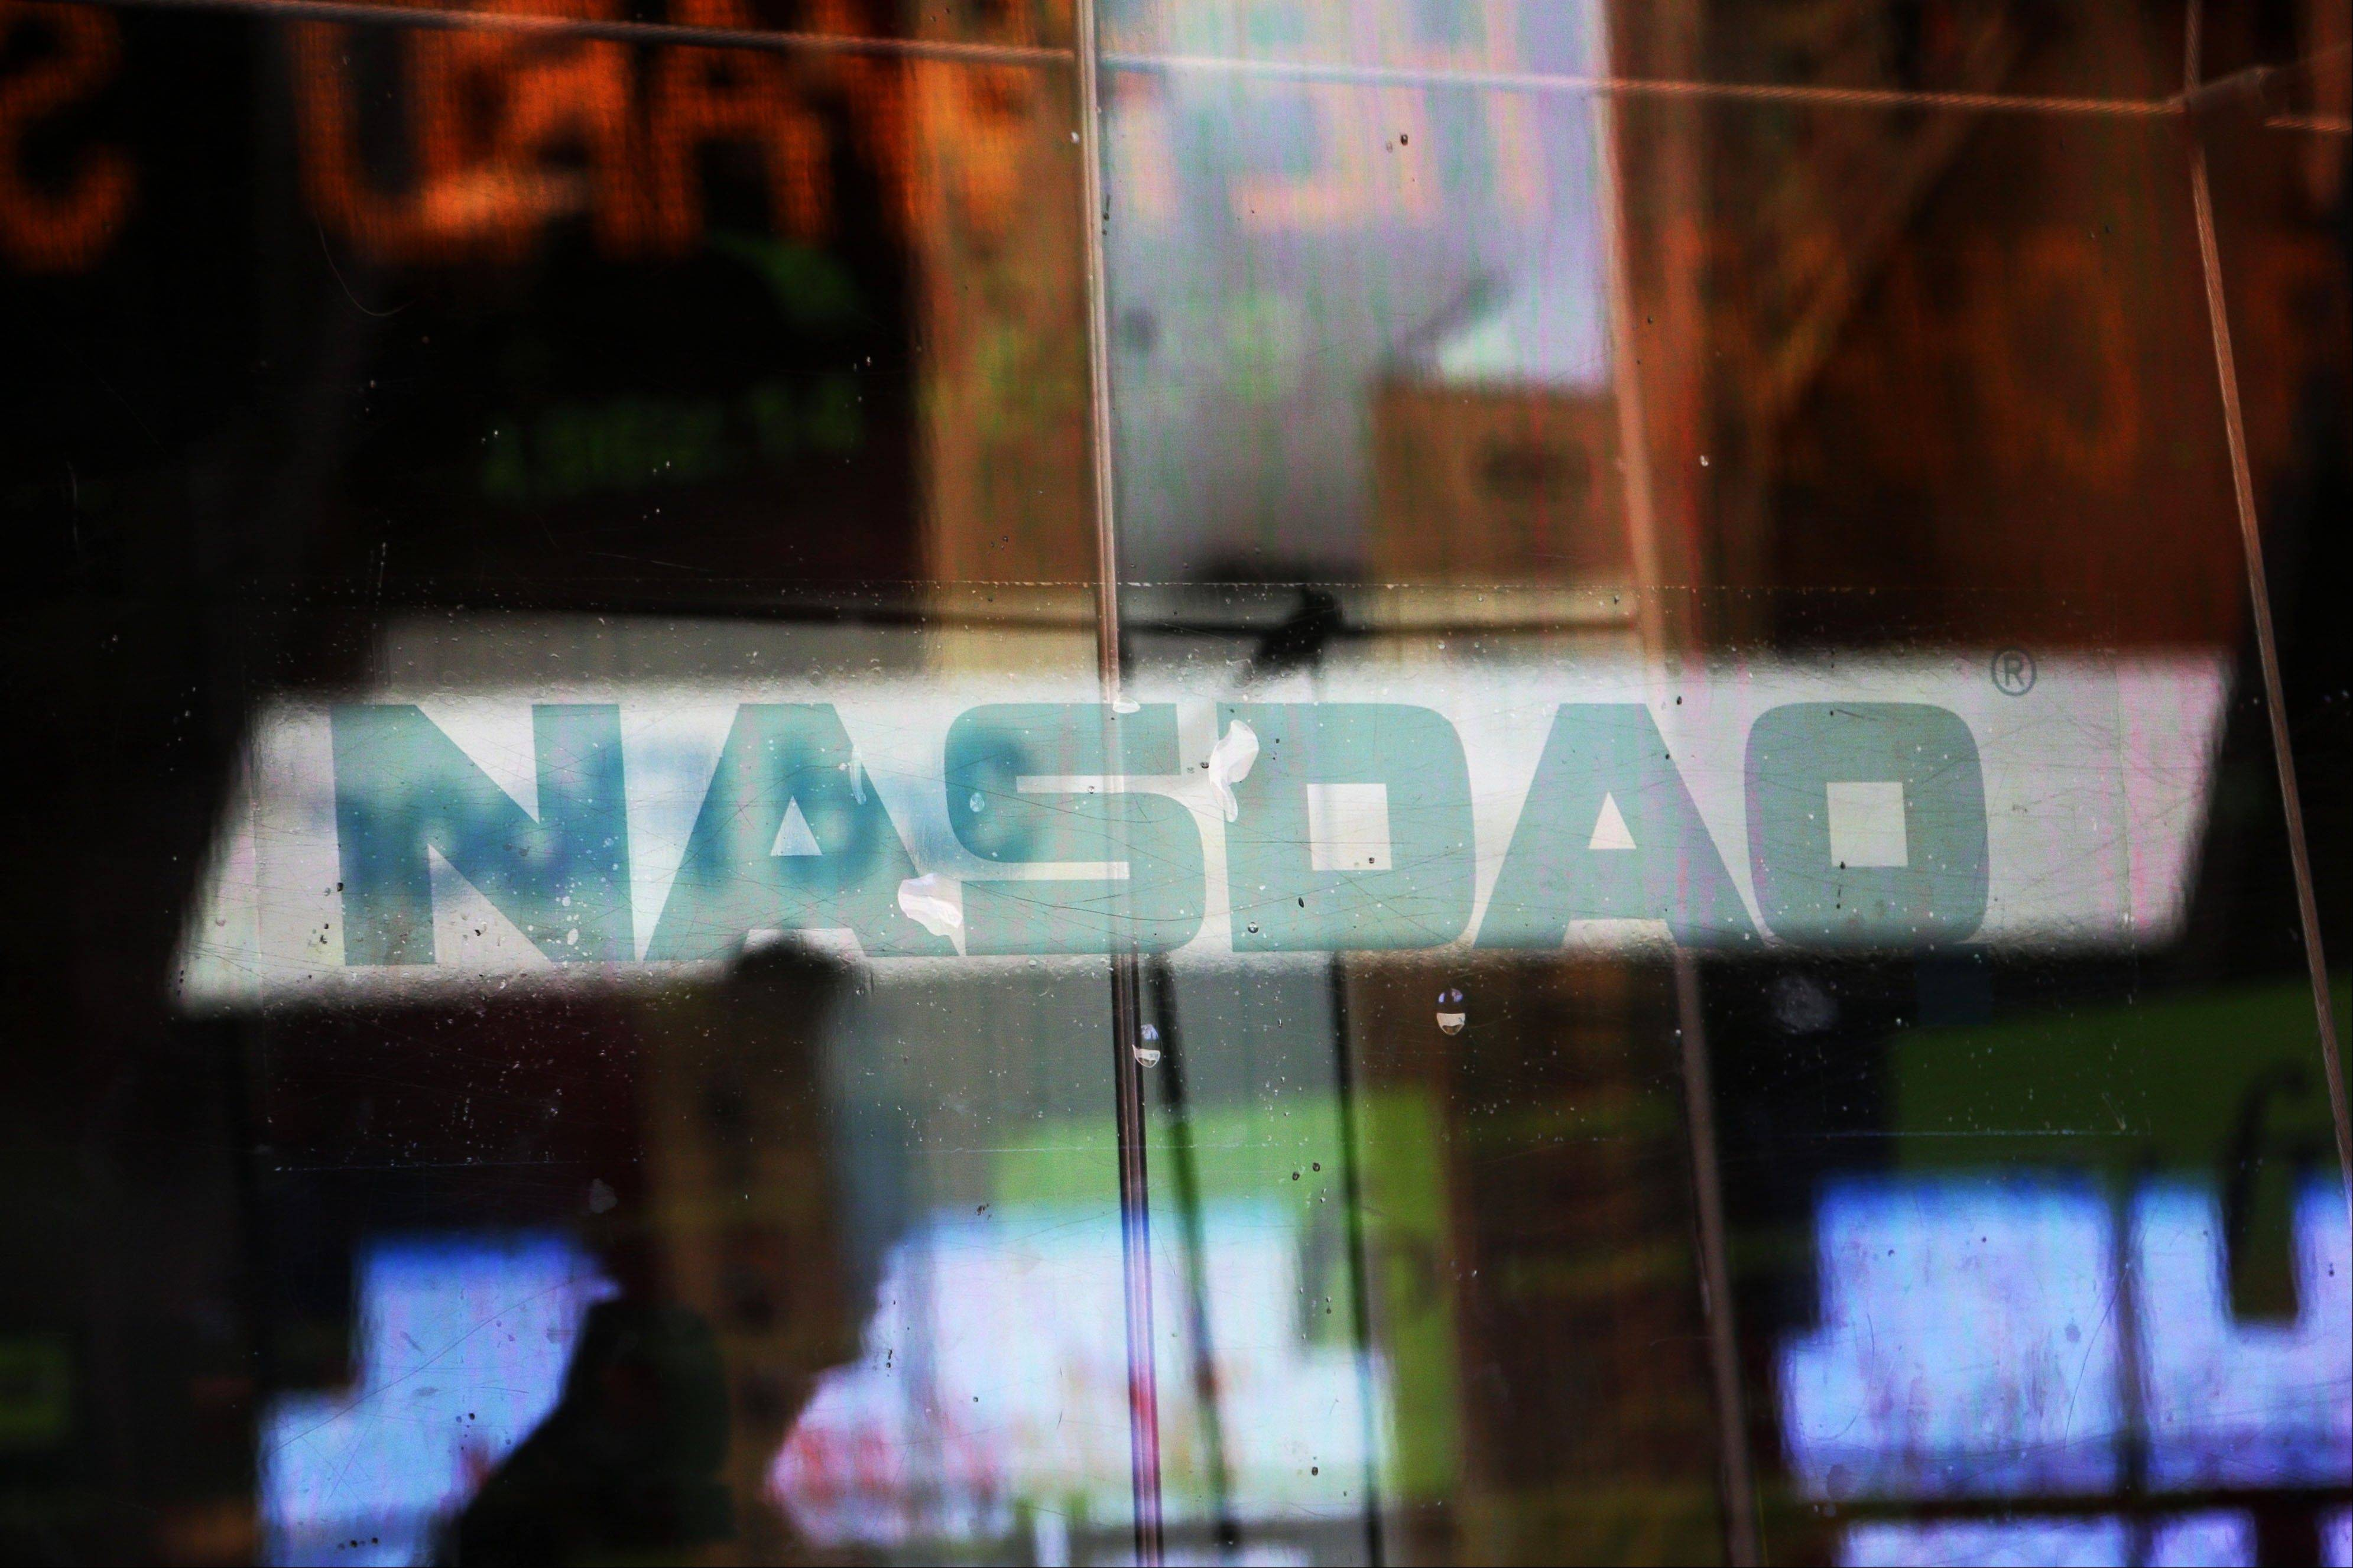 The Nasdaq Composite is up 35 percent in 2013, but while other major indexes like the Dow Jones industrial average and Standard & Poor's 500 have celebrated all-time highs again and again, the Nasdaq remains 20 percent below its dot-com peak of 5,048.62.